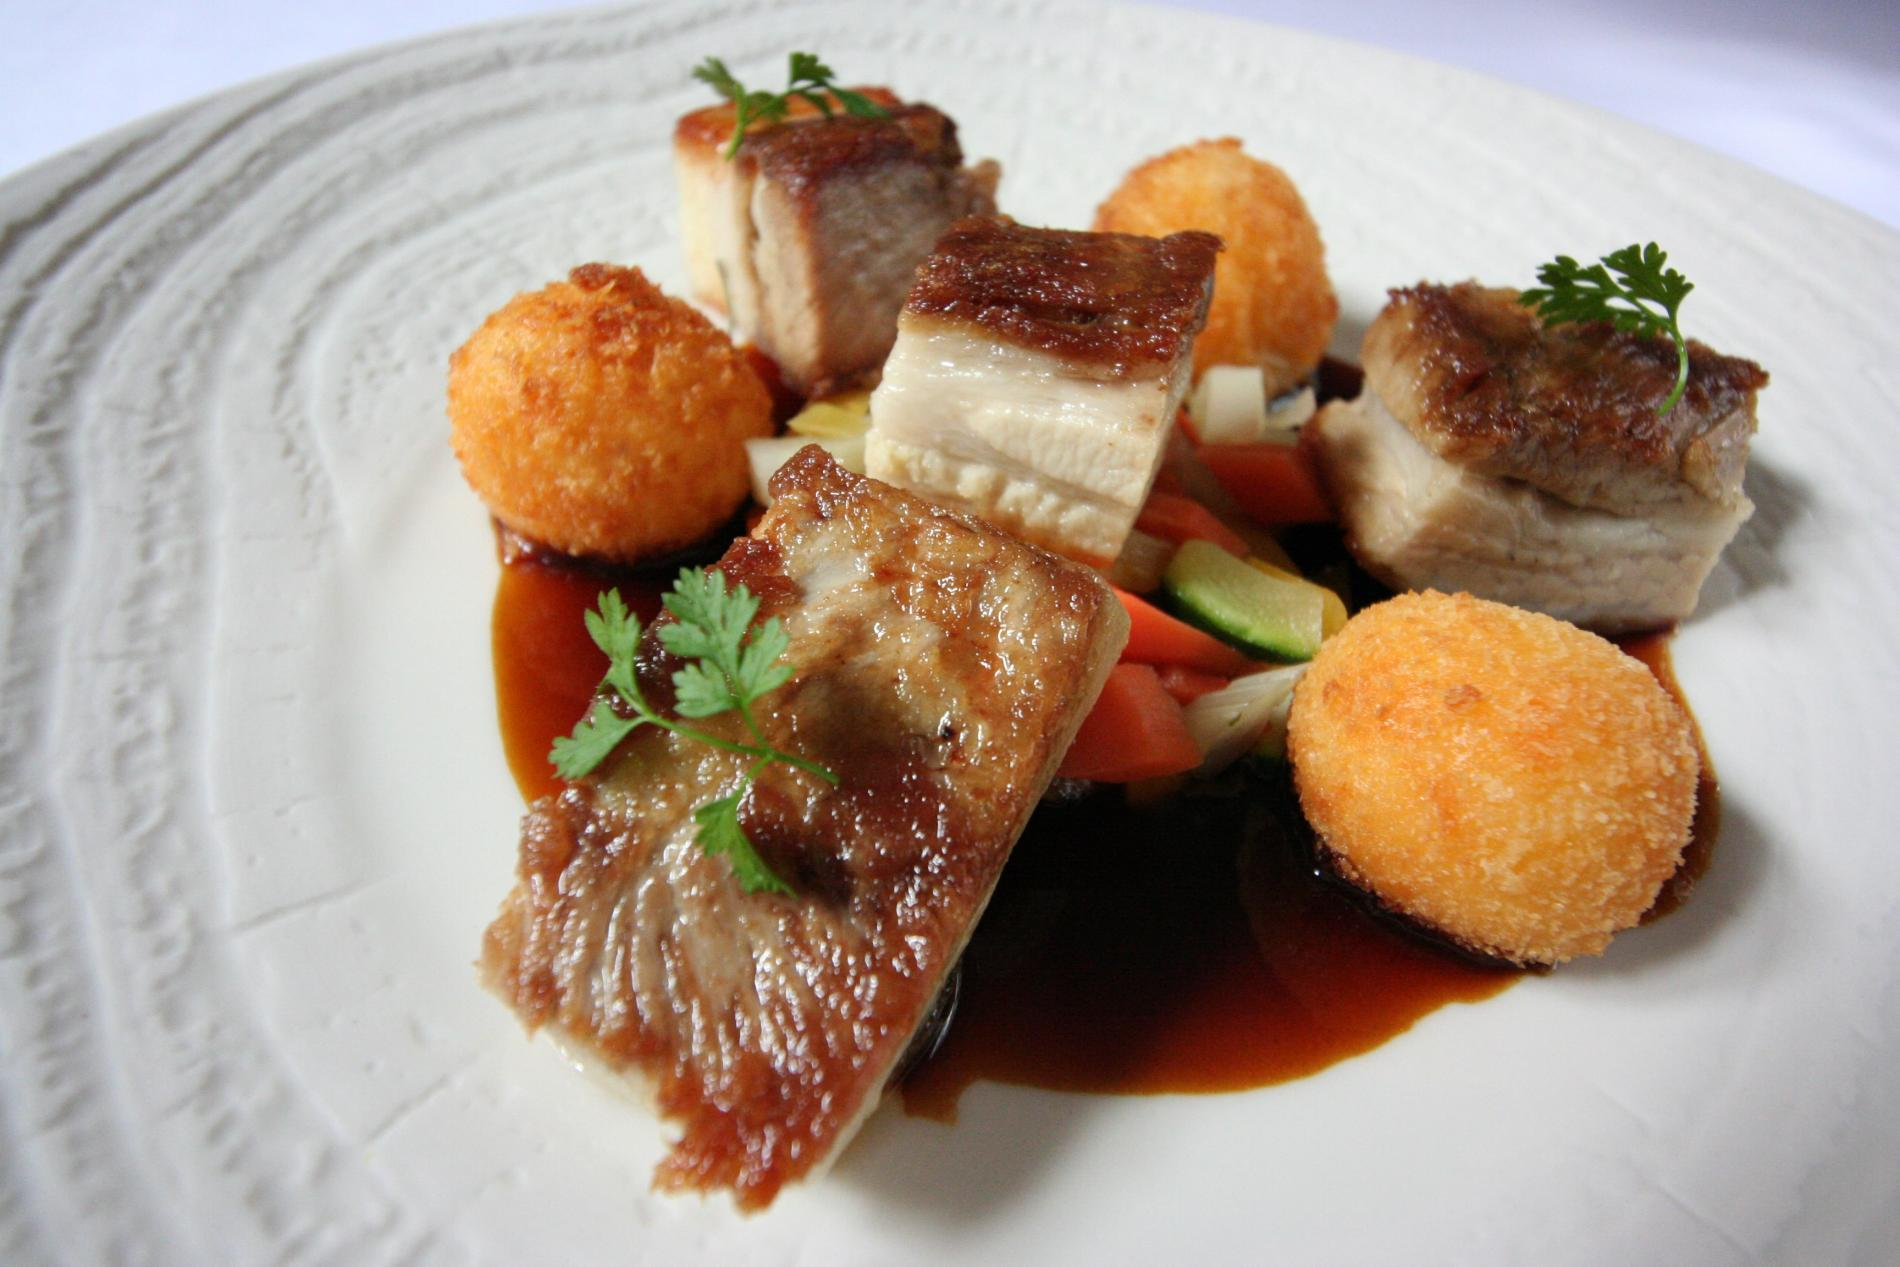 The pork belly from the Perche